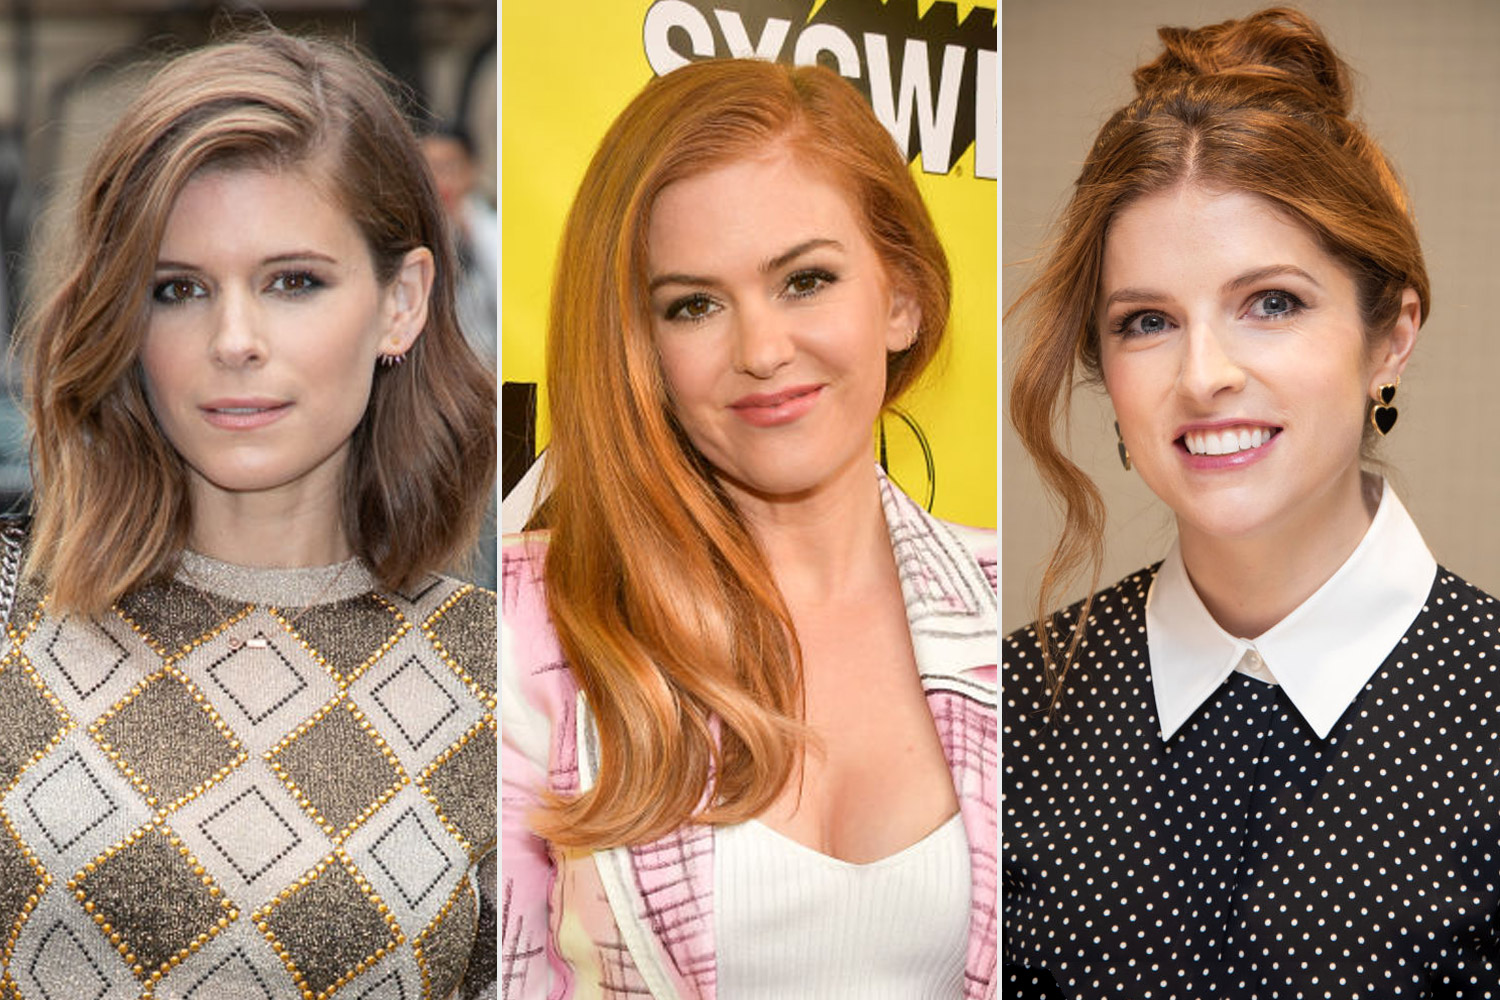 Kate Mara on the left with Isla Fisher/Anna Kendrick on the right